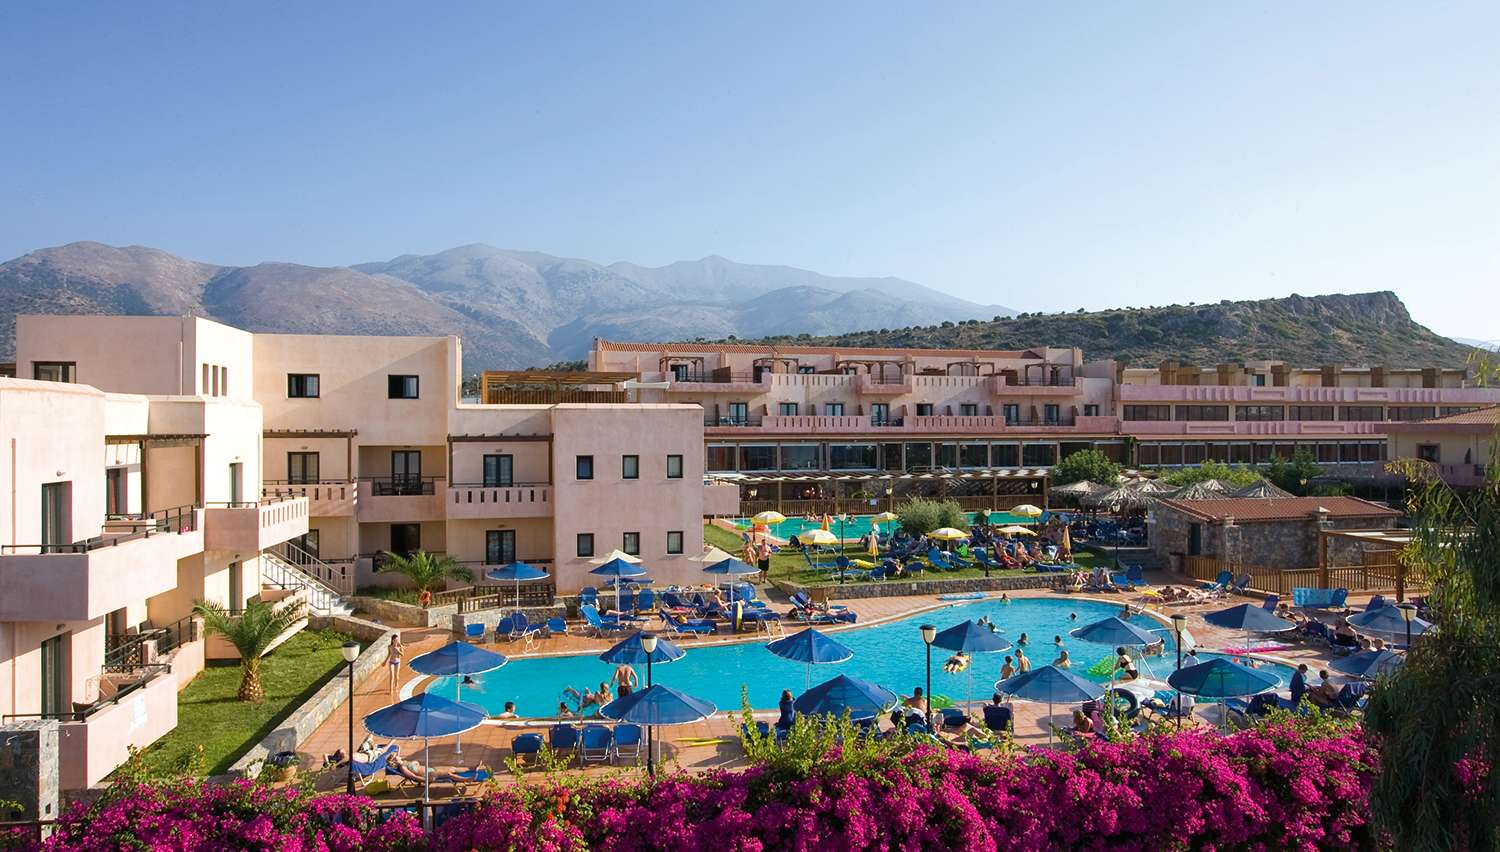 1089a624b36 Vasia Beach Resort & Spa hotell (Heraklion, Kreeka) | NOVATOURS